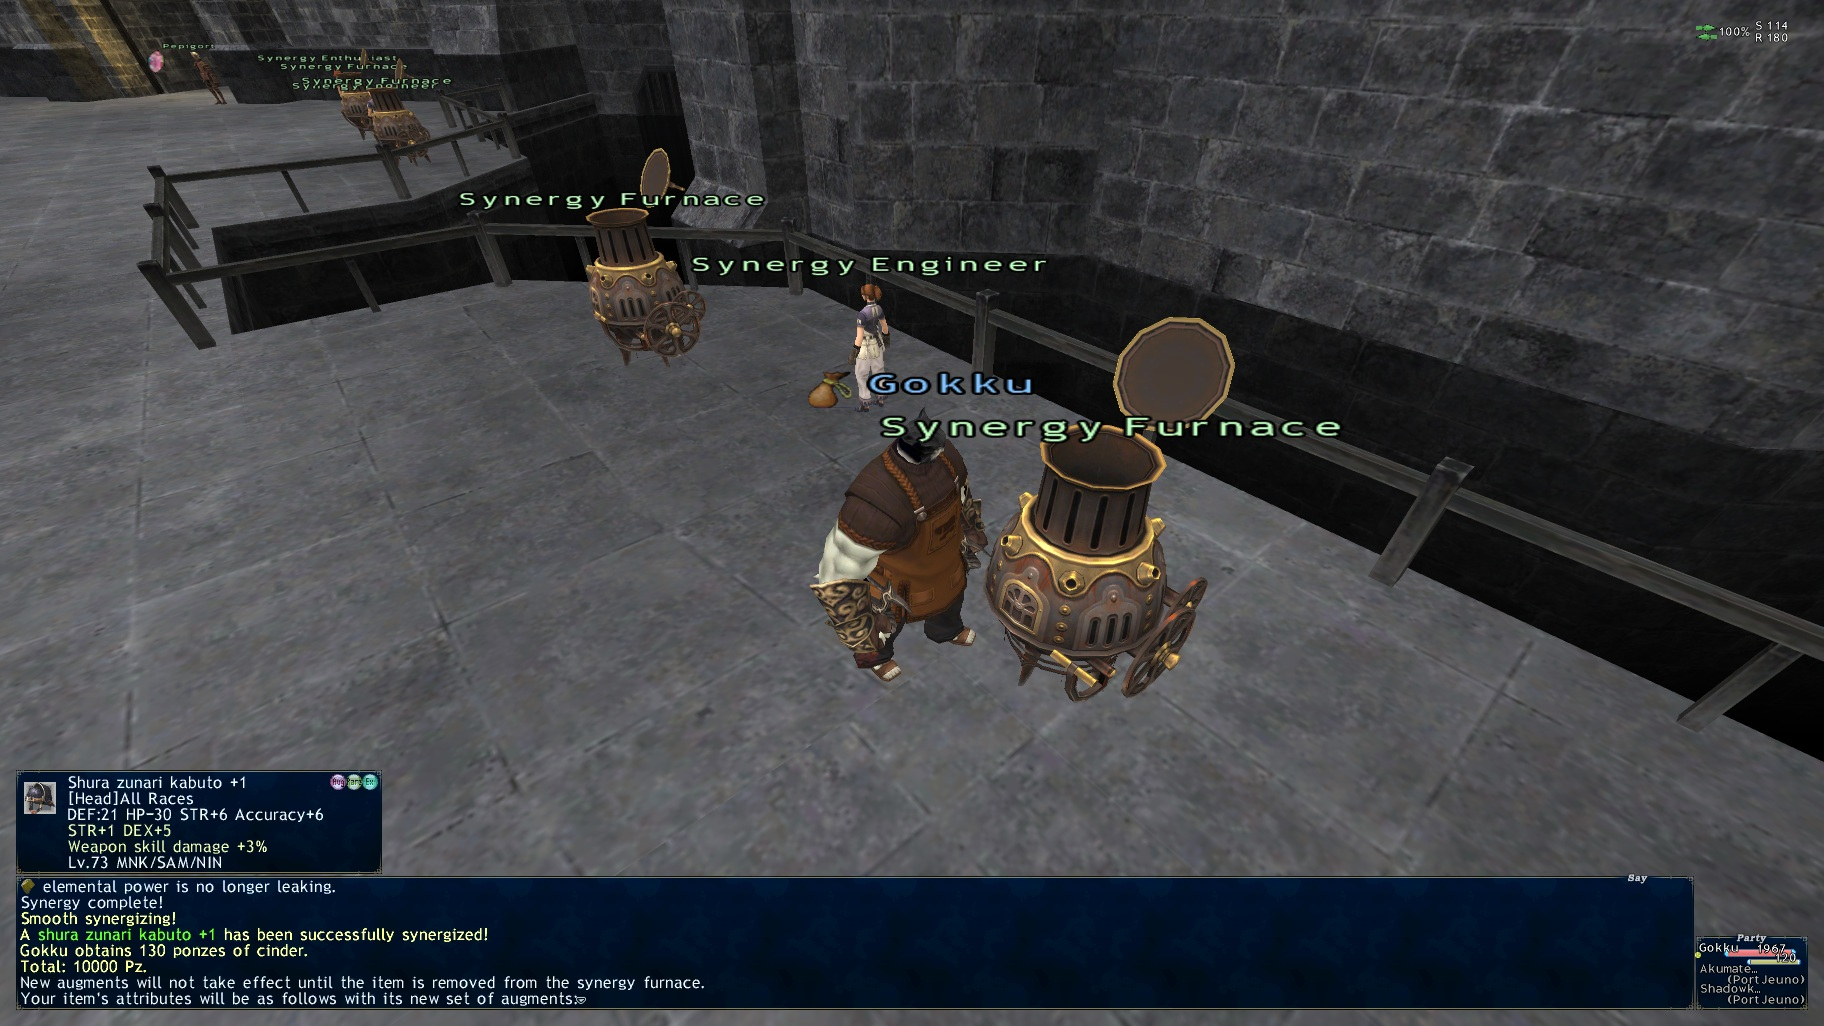 gokku ffxi augment with stone after shit your breaking ended posted whats augments nekodance overshooting wiki magic attack bonus decided skirmish show augmented items staff post went today lucky